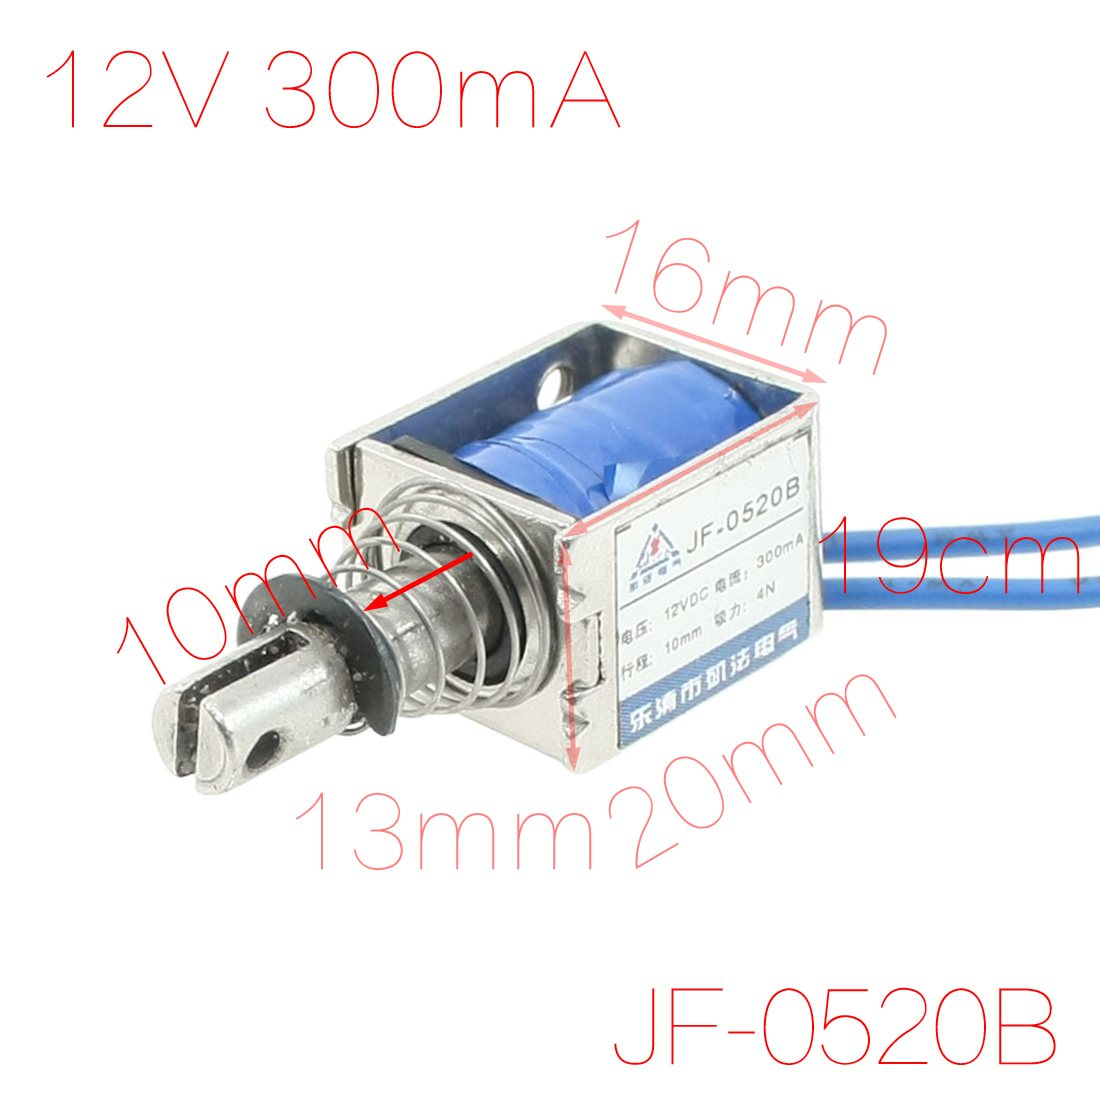 UXCELL 12V 300Ma Push Pull Type Open Frame Solenoid Electromagnet 10Mm 4N 0.9Lb built-in mounting board DC electronmagnet DIY цена